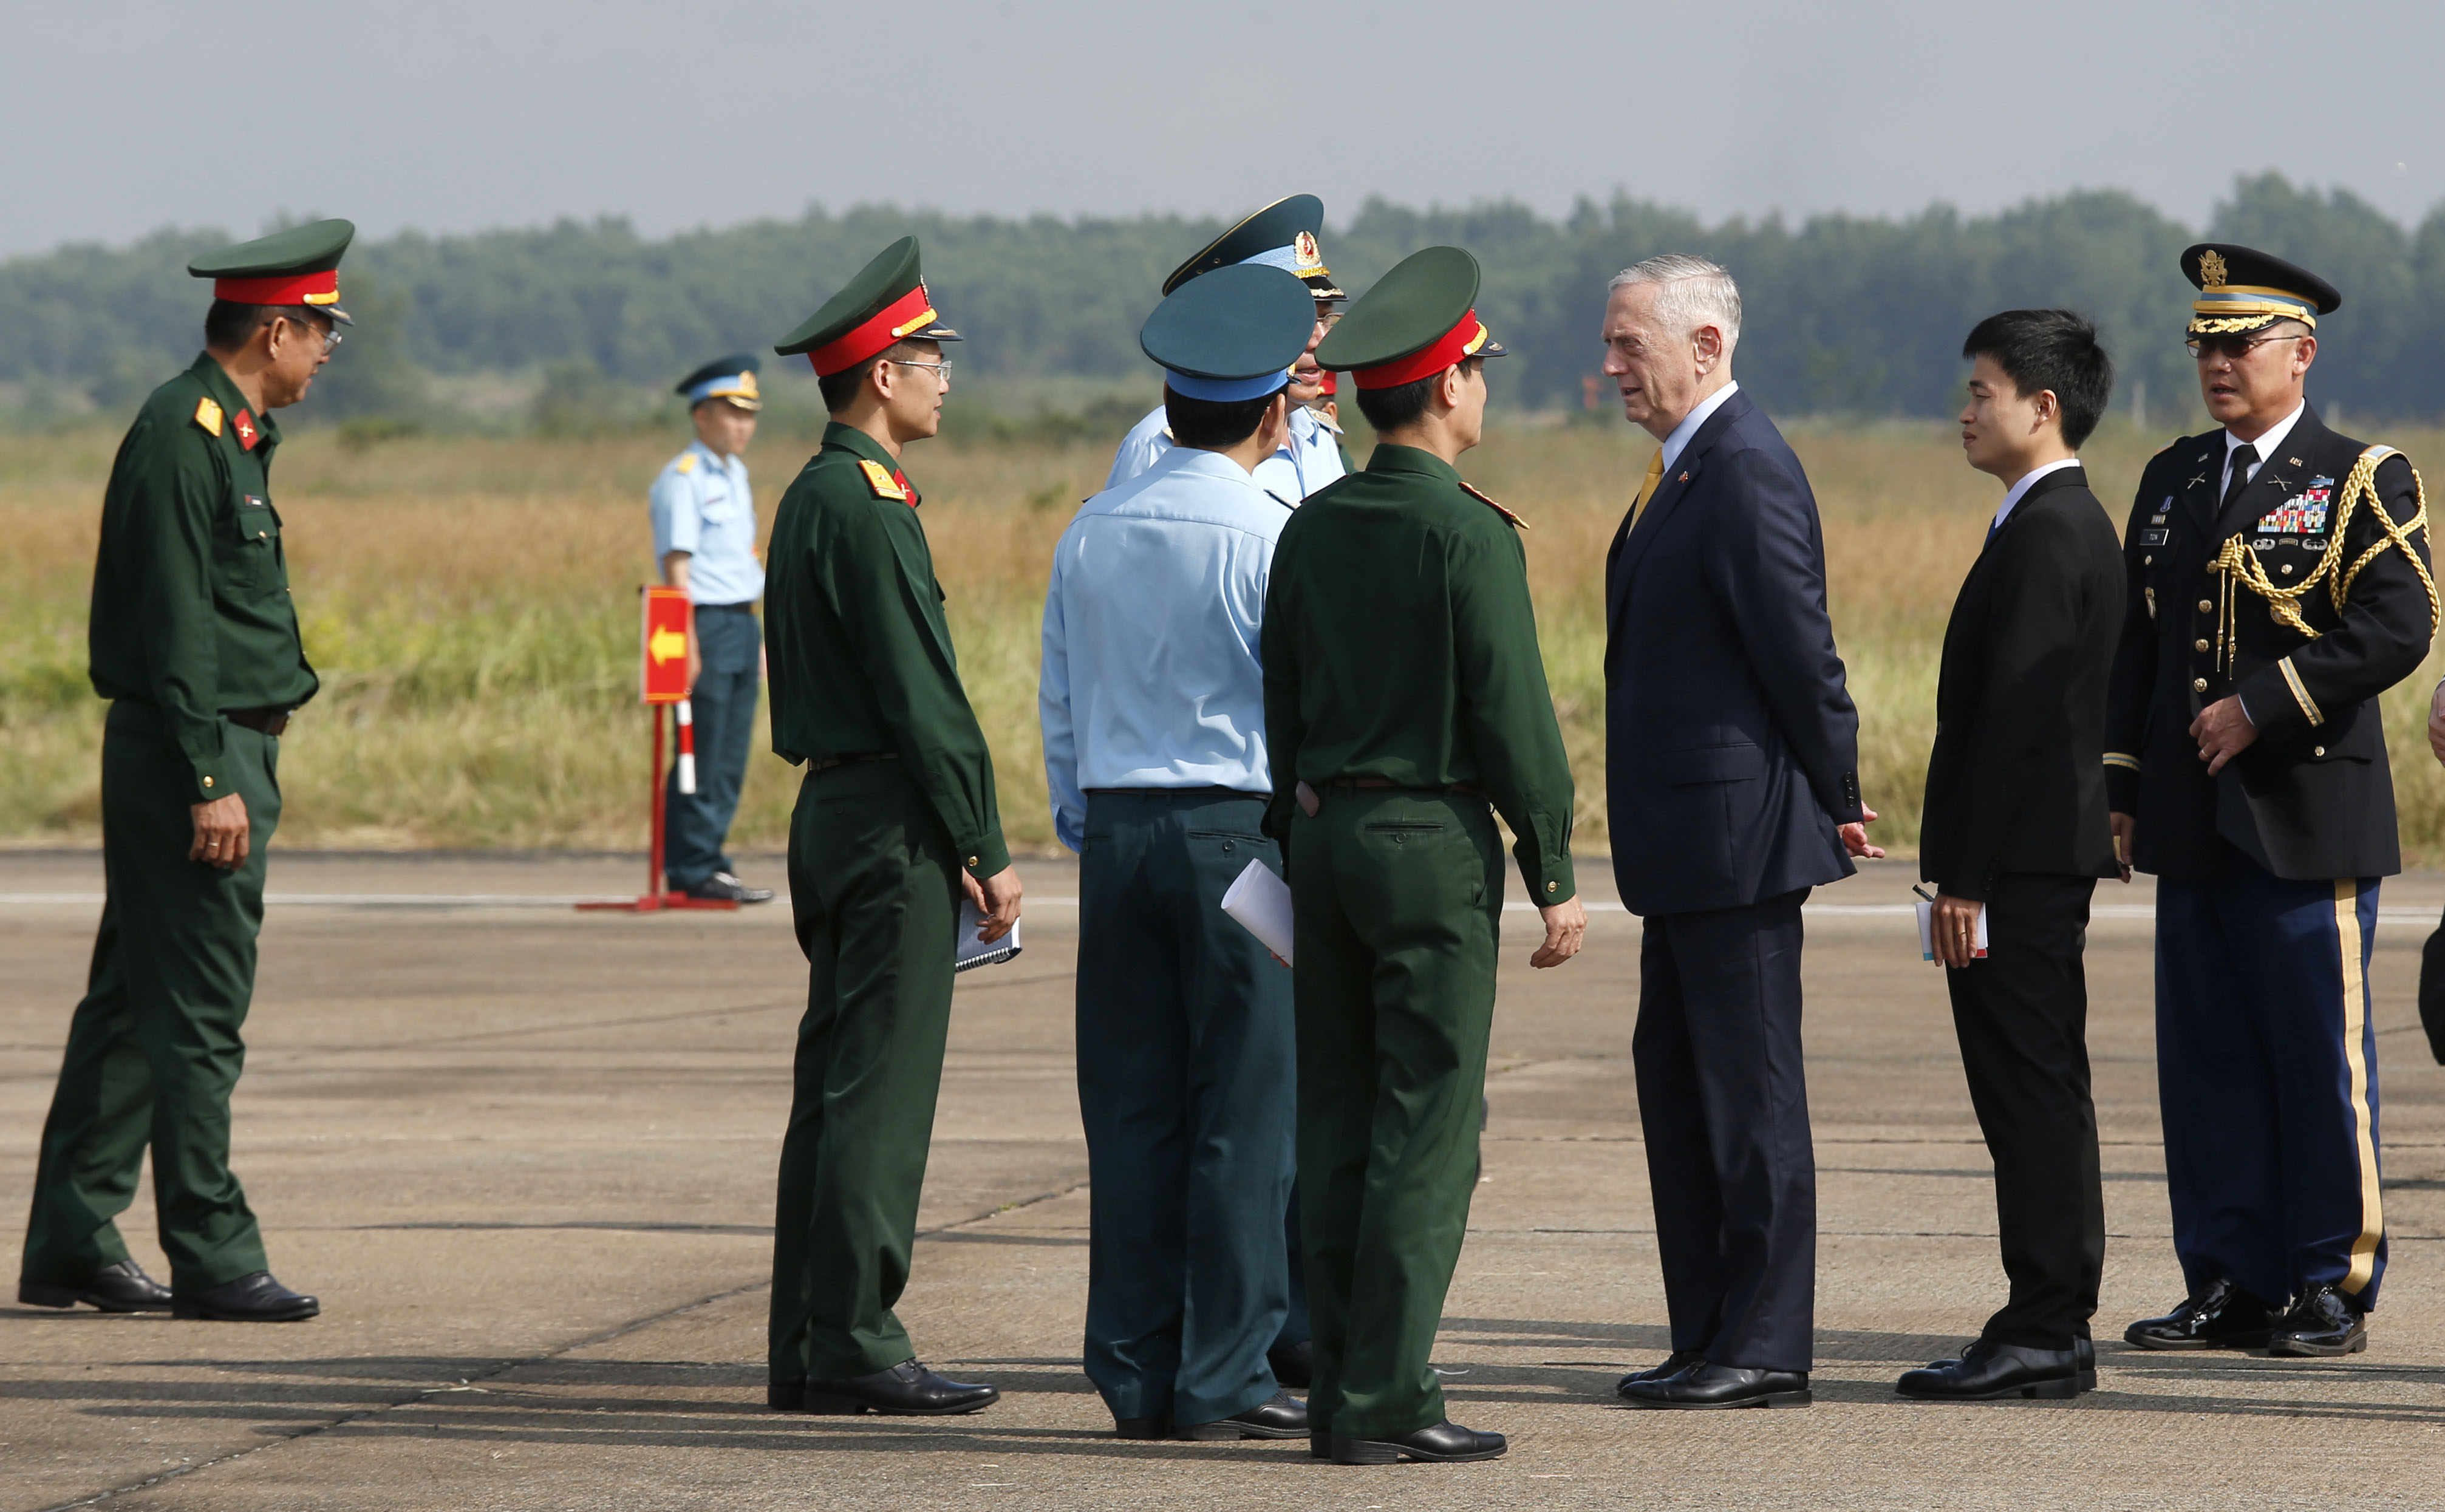 U.S. Defense Secretary Jim Mattis talks to Vietnamese military officials as he visits Bien Hoa airbase, where the US army stored the defoliant Agent Orange during the Vietnam War, in Bien Hoa city, on the outskirts of Ho Chi Minh city, on October 17, 2018.